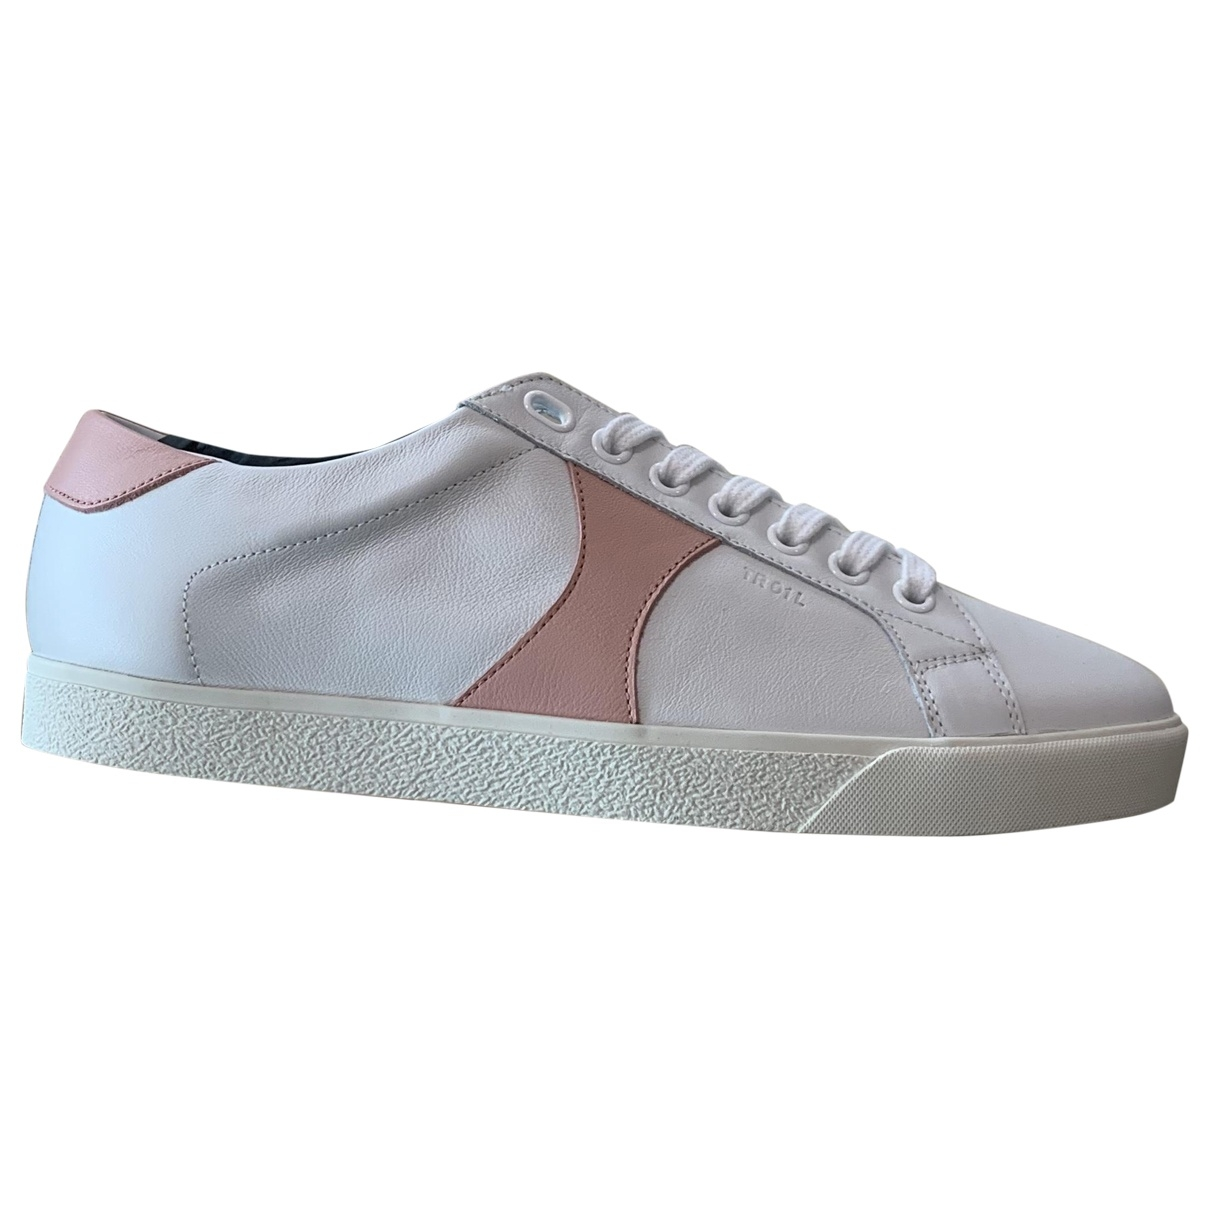 Celine Triomphe White Leather Trainers for Women 38 EU